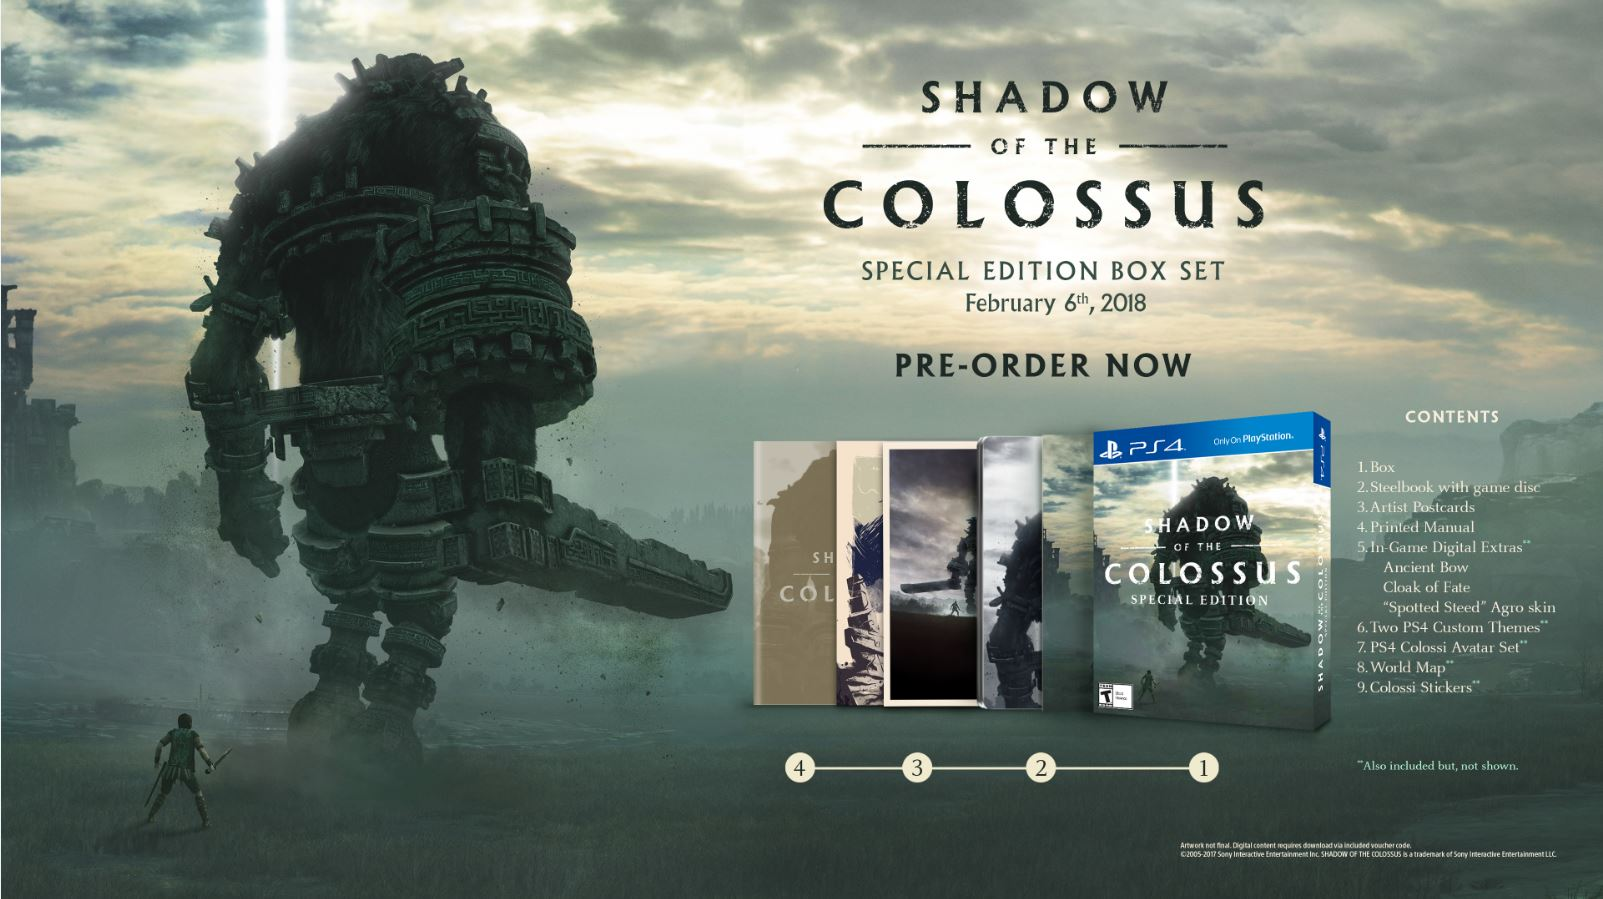 Shadow of the Colossus Special Edition Box Set